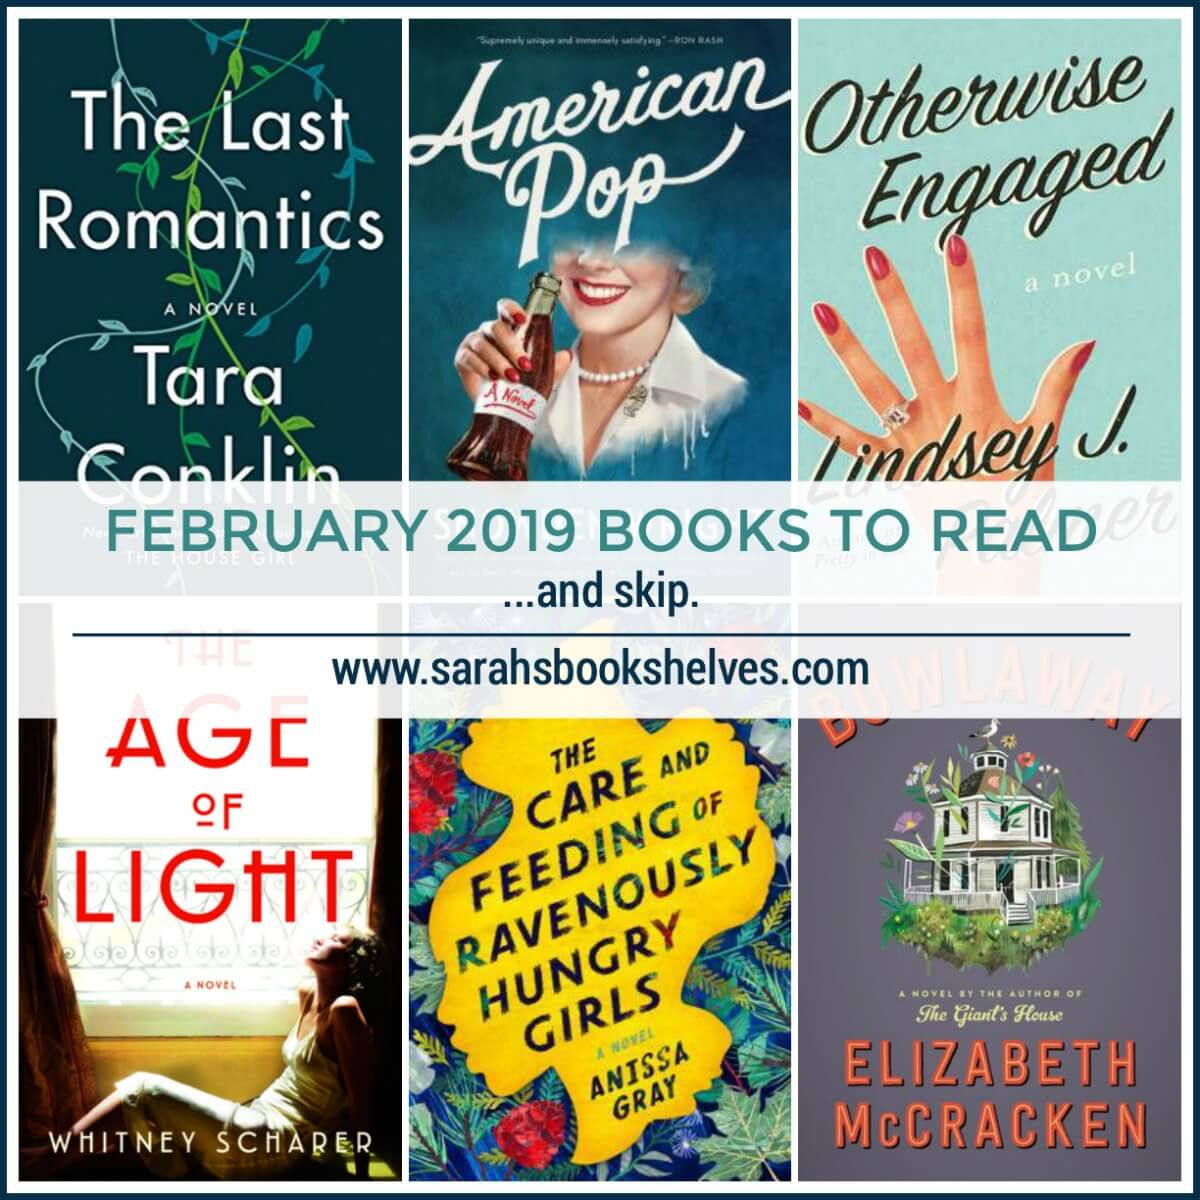 February 2019 Books to Read